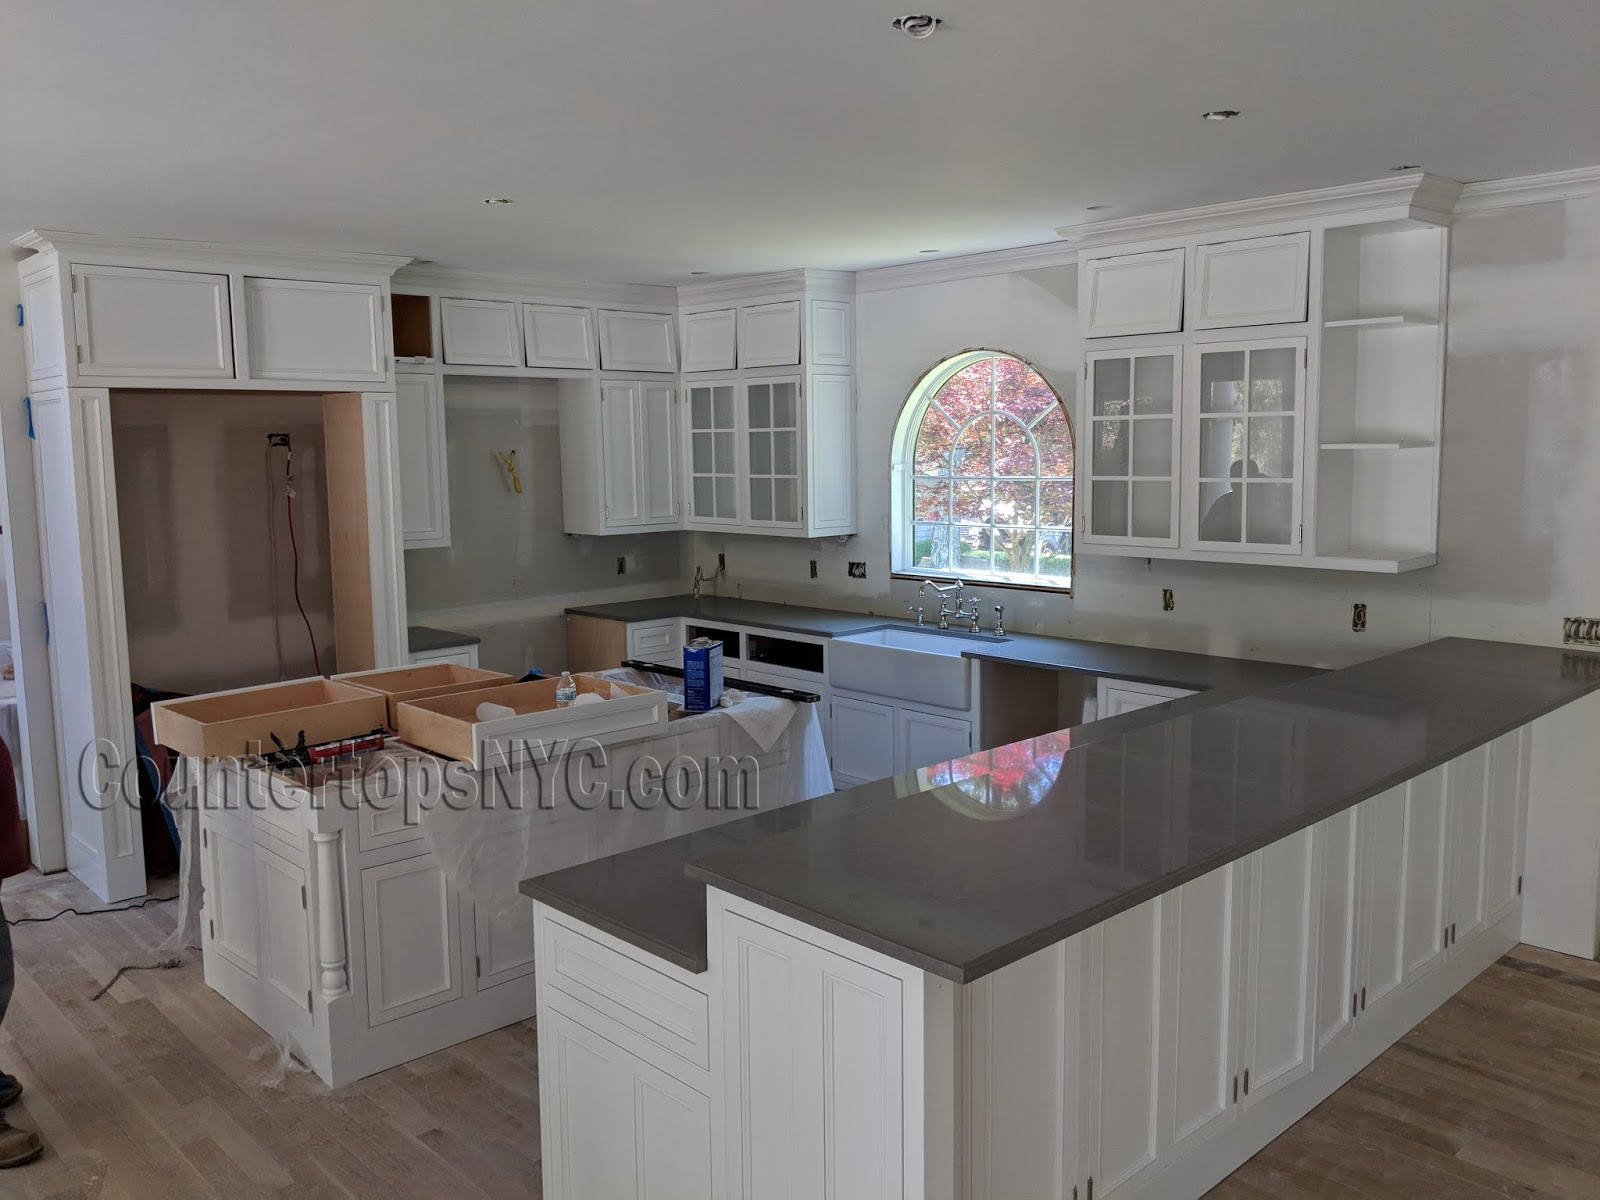 Best Color Quartz With White Cabinets – Countertops NYC